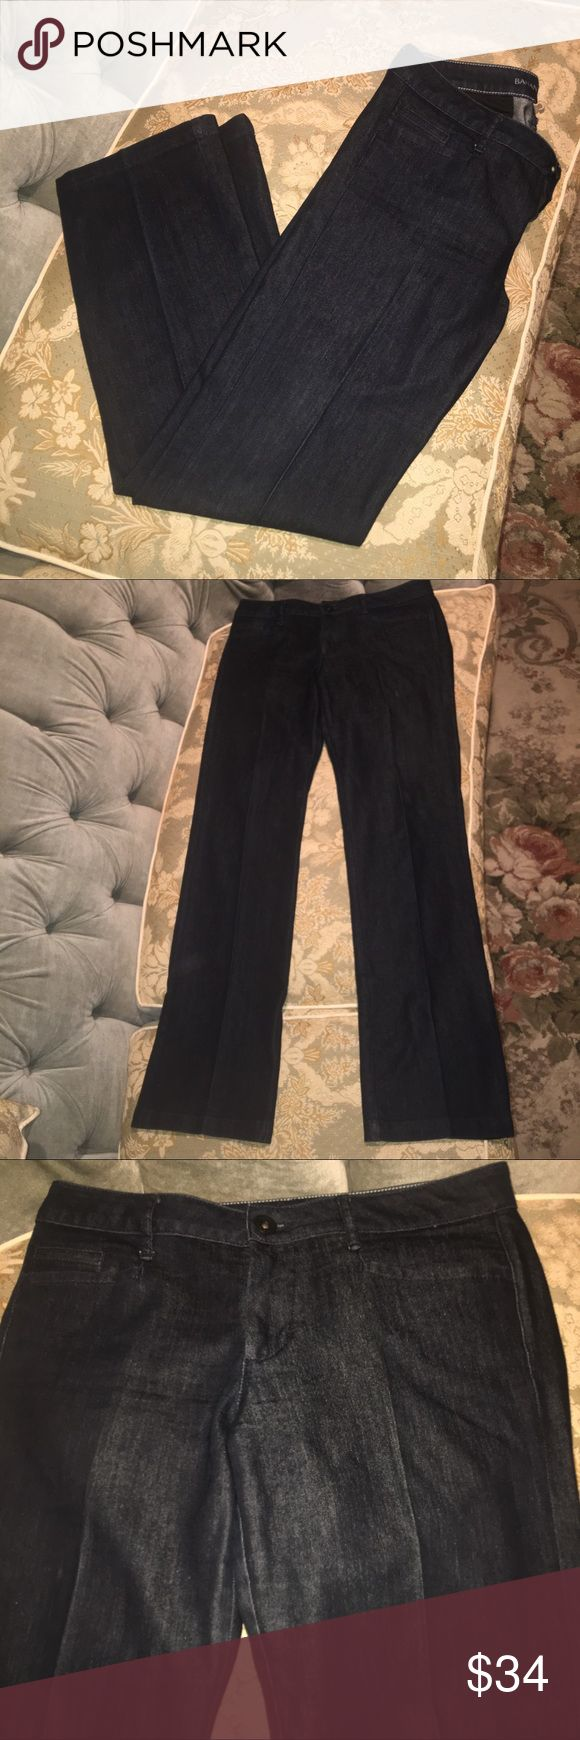 "Banana Republic Wide Leg Lightweight Jeans/SZ 29 Perfect for Fall/Winter dark wash, lightweight, Banana Republic Jeans. Like New Condition. Pleated front accent. Gorgeous fit and slightly stretchy fabric. Very comfortable and stylish. Flattering to any figure. Flat Lay Measurements/Waist 16""-Hips 20""-Rise 8 1/2""-Inseam 32 1/2"". Cross-Posted Banana Republic Jeans Flare & Wide Leg"